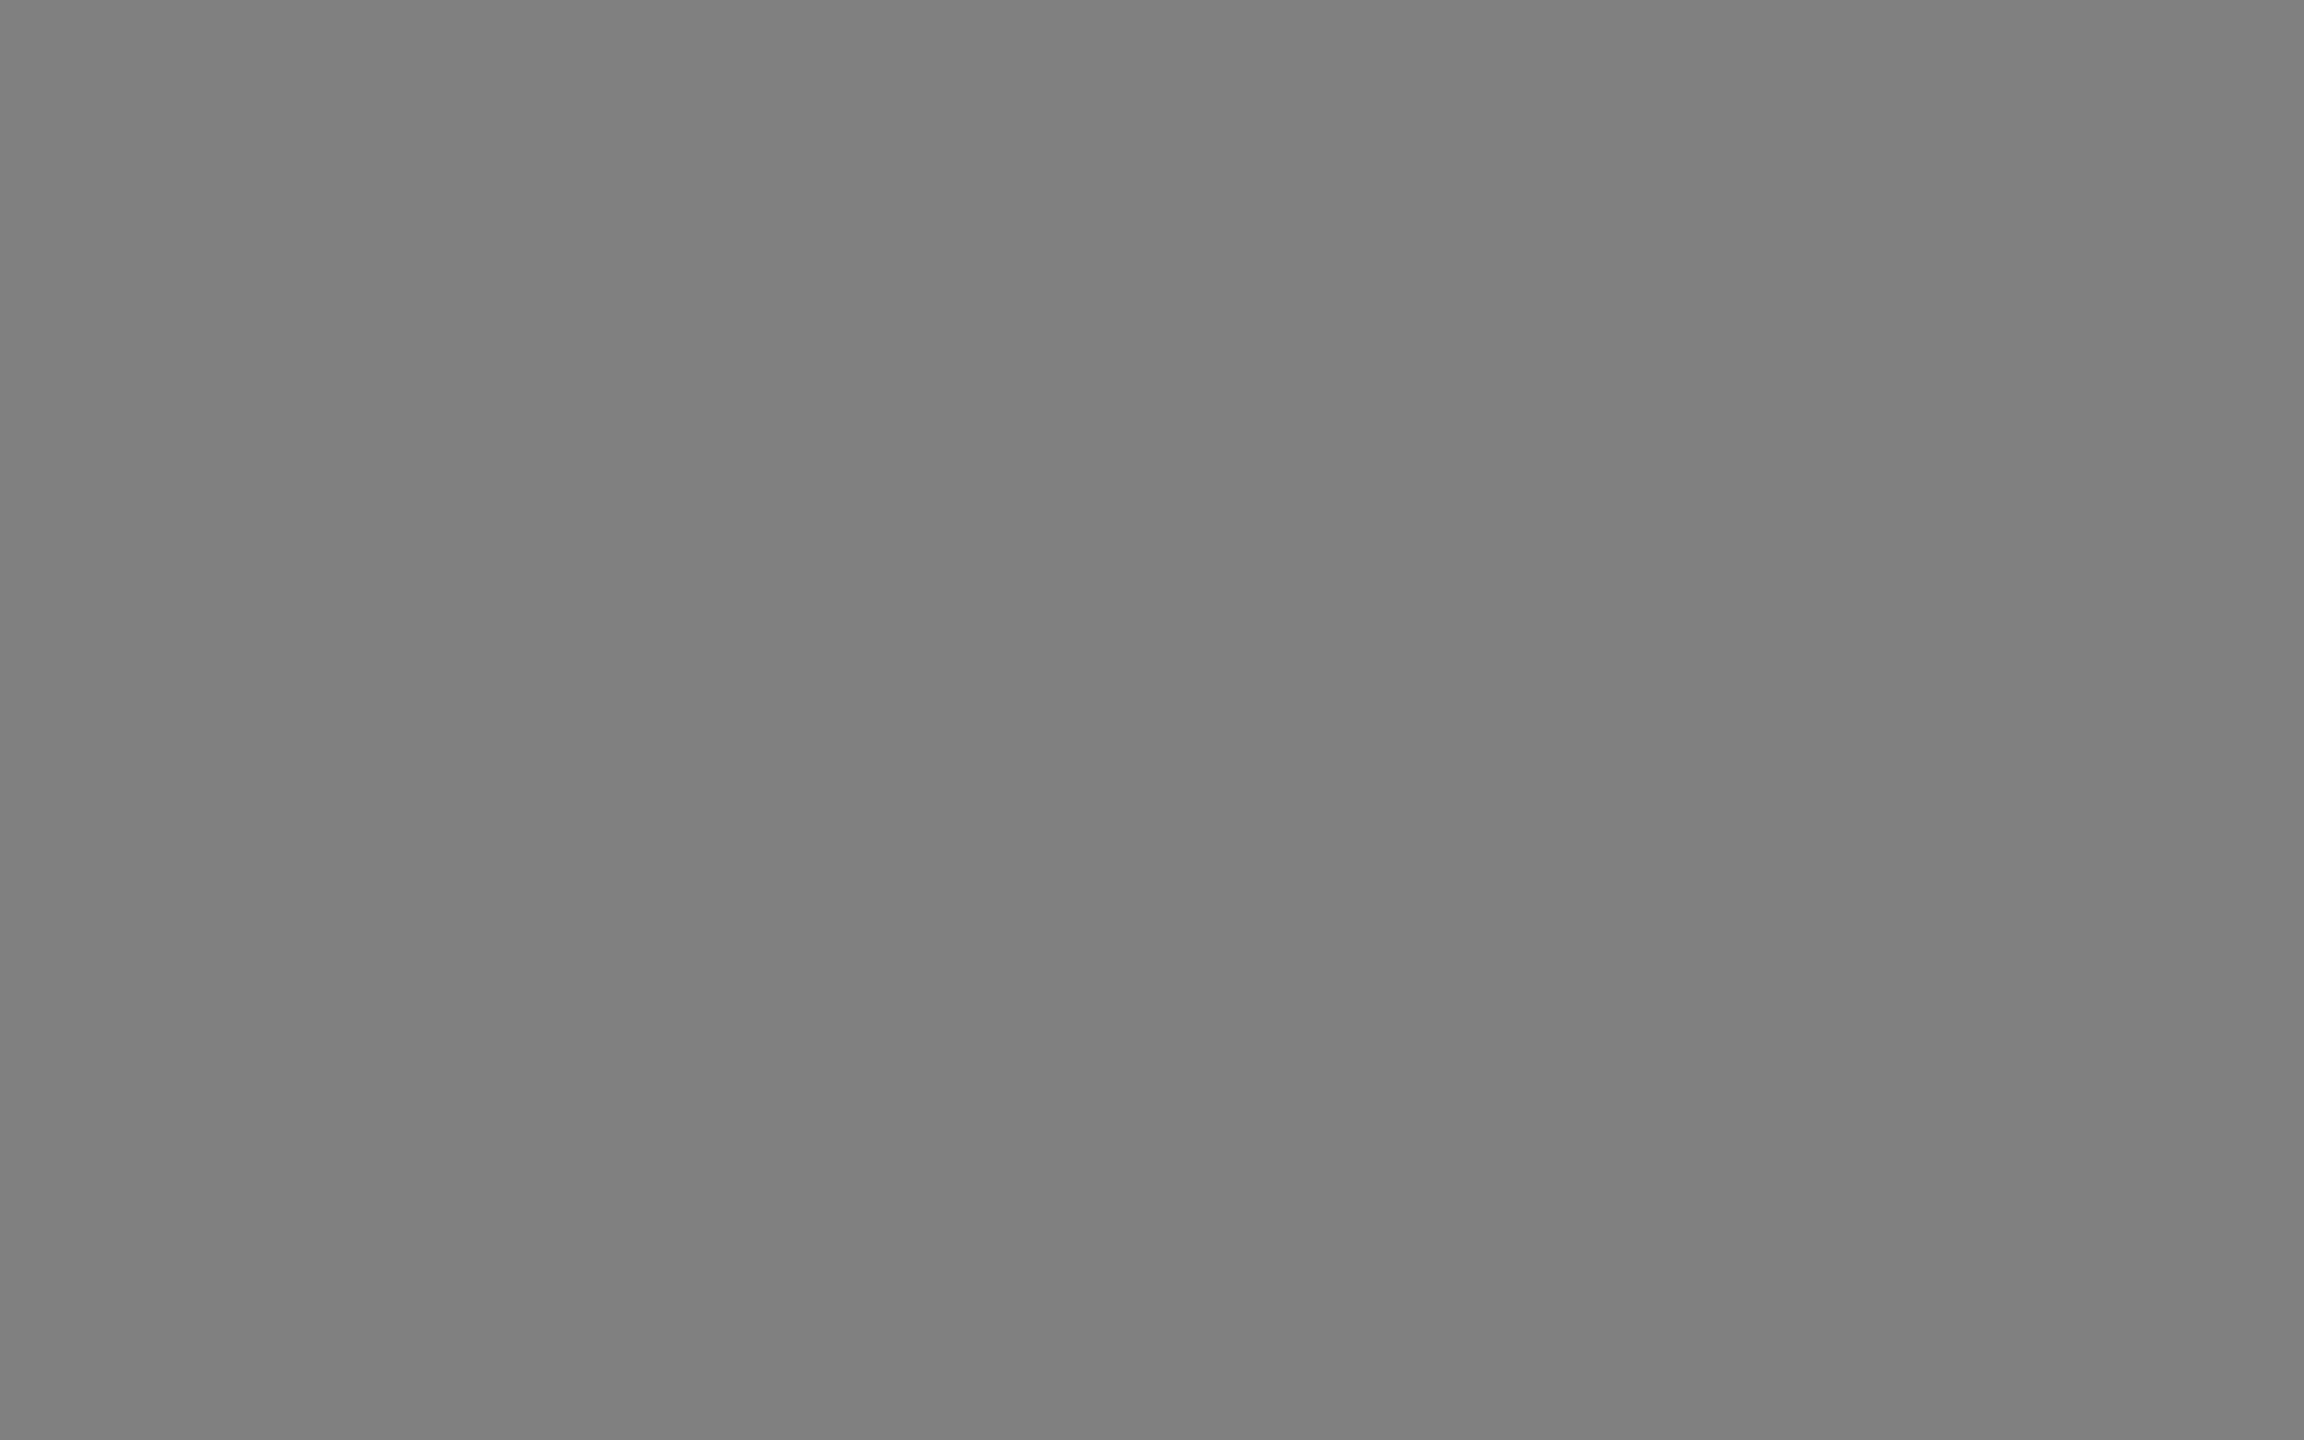 2304x1440 Gray Web Gray Solid Color Background